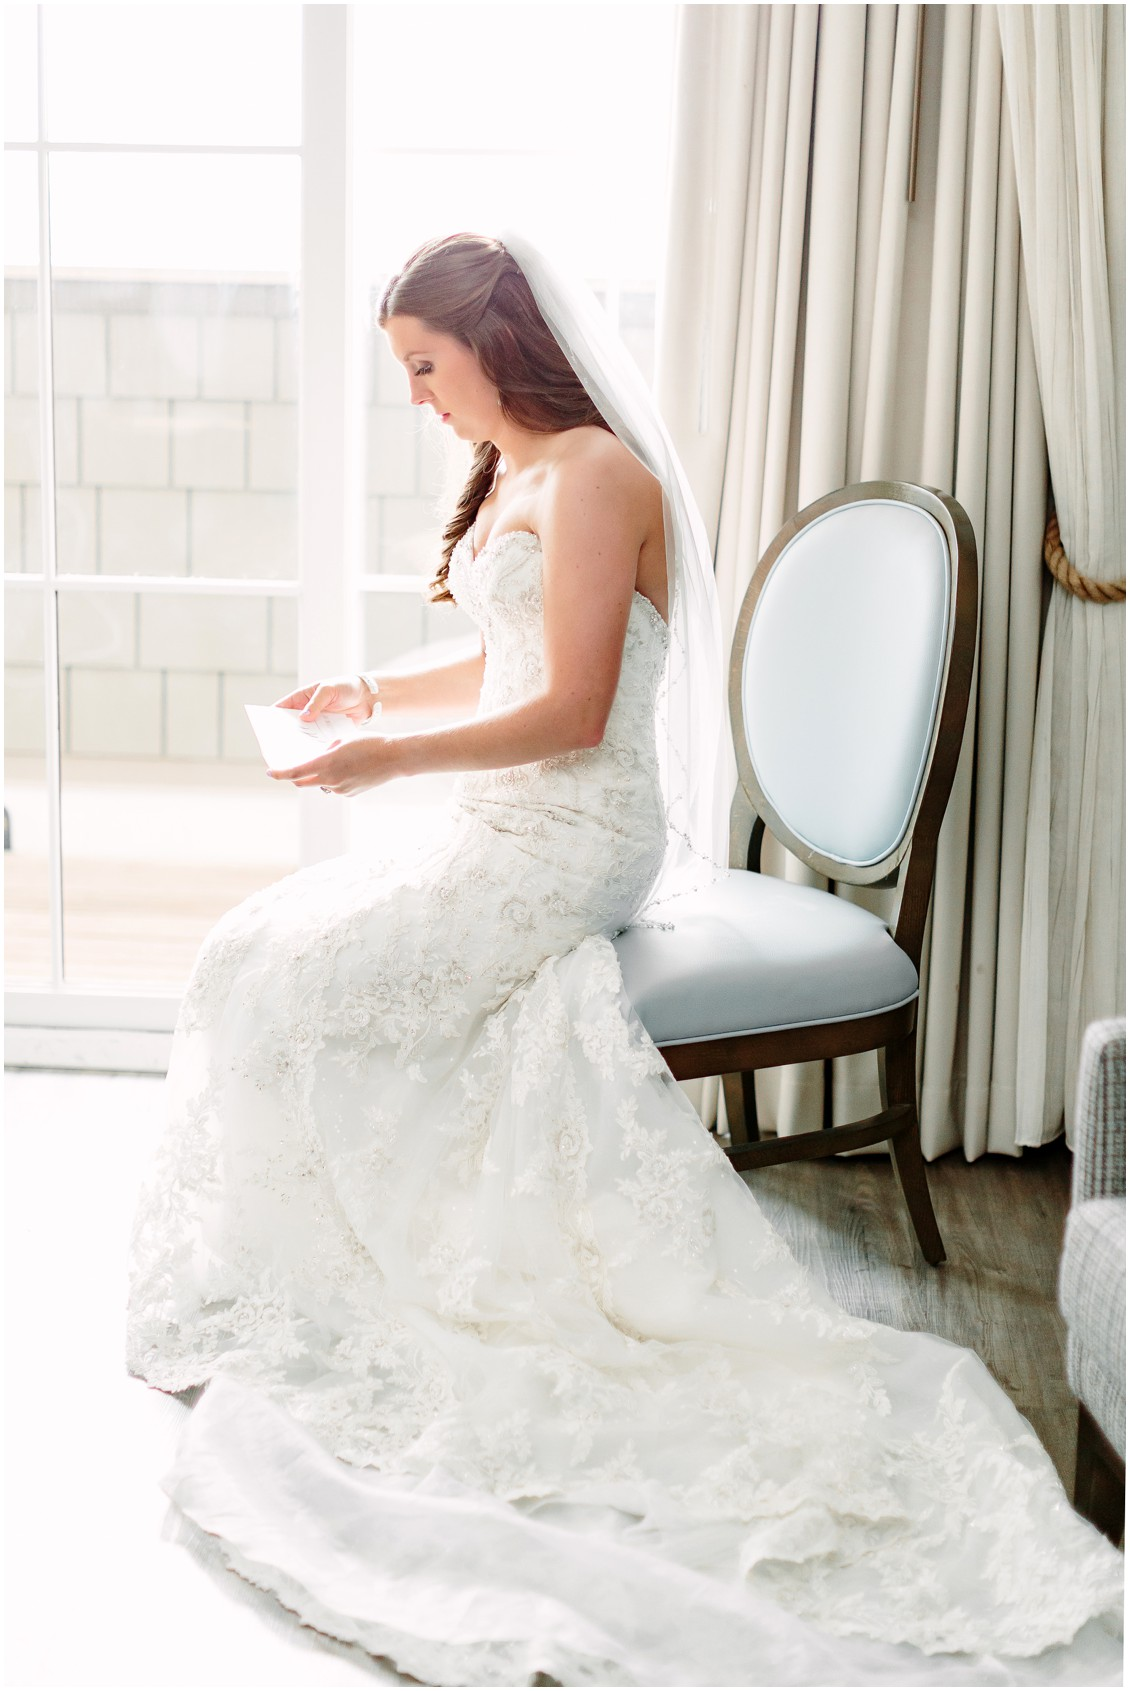 Bride | Strapless, lace wedding gown | My Eastern Shore Wedding |